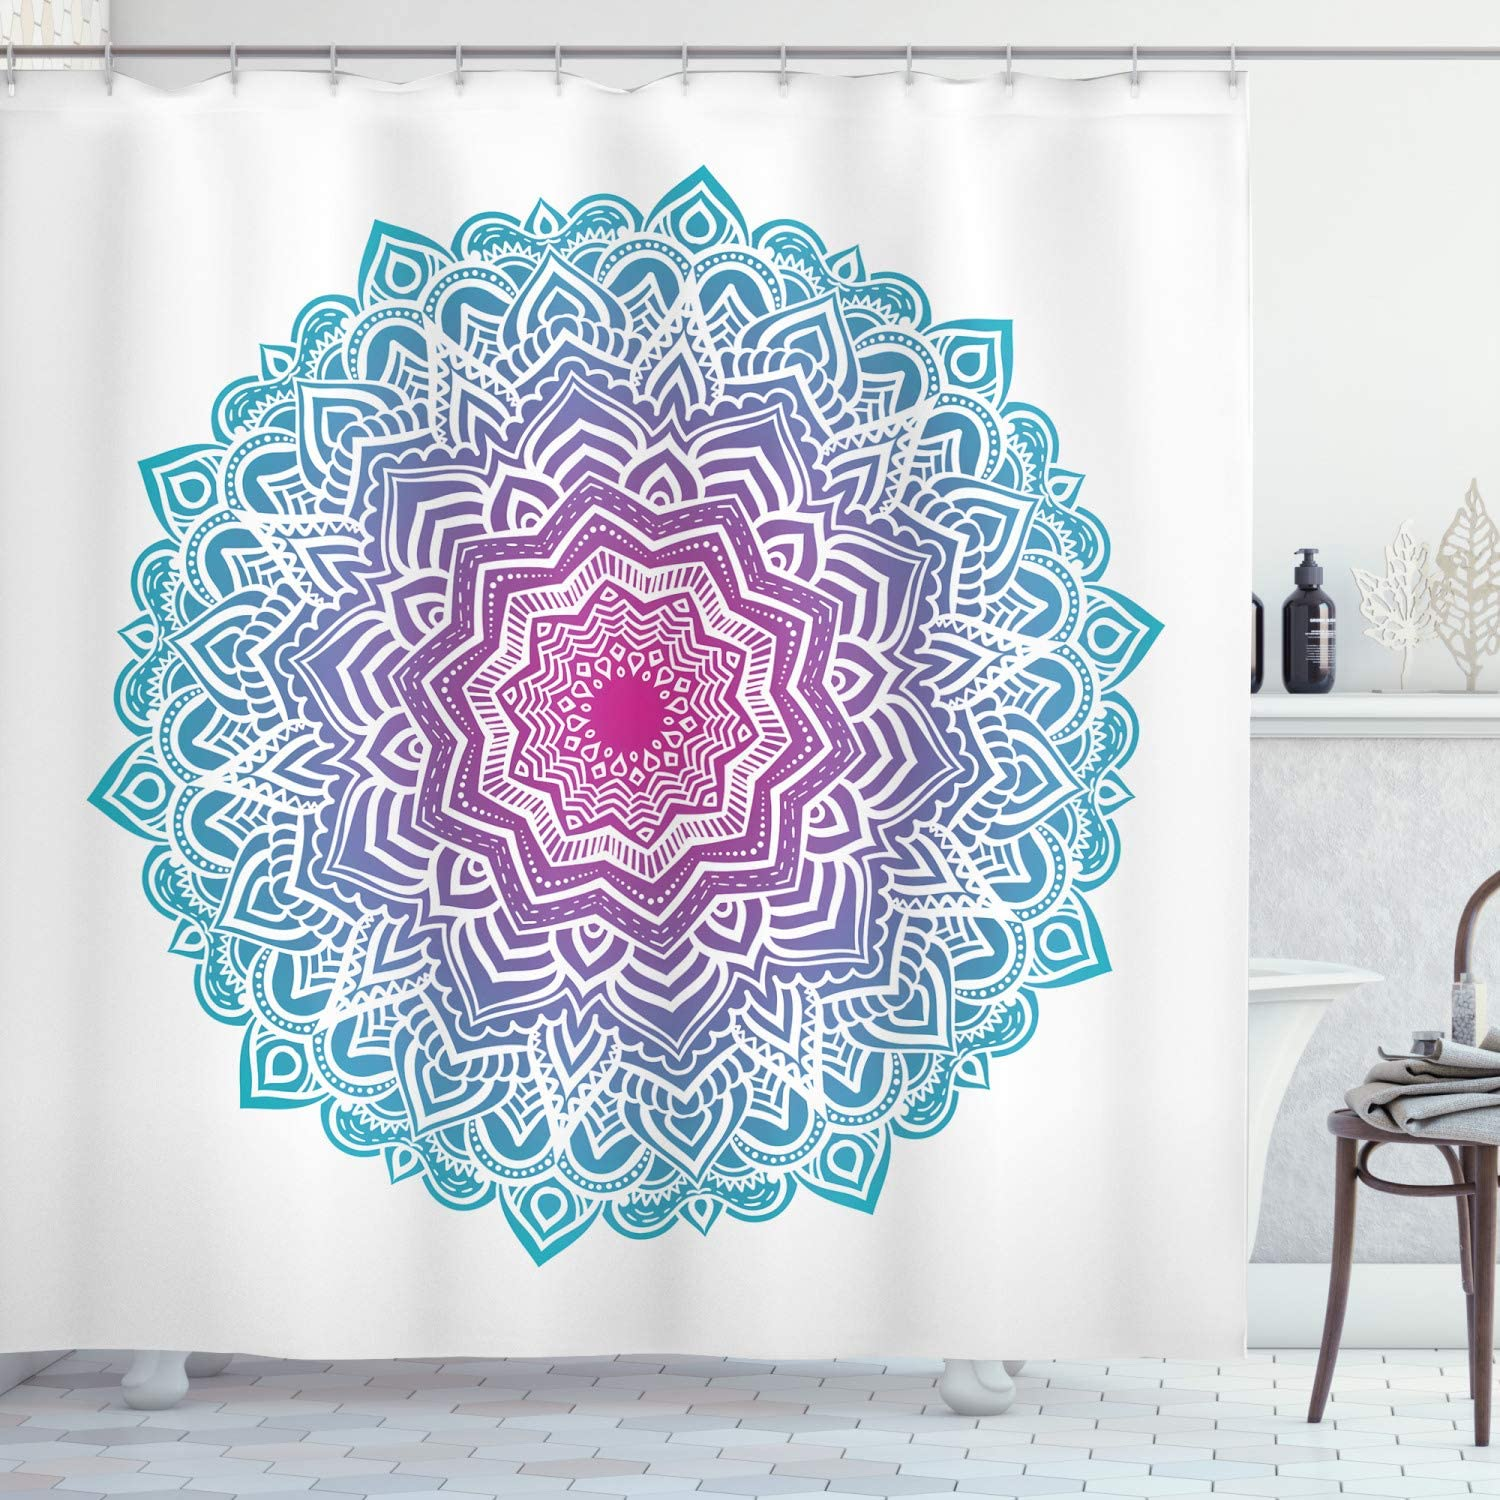 Ambesonne Mandala Shower Curtain Round Floral Starry Pattern With Soft Aqua Color Meditation Theme Cloth Fabric Bathroom Decor Set With Hooks 70 Long White Pink Blue Home Kitchen Amazon Com